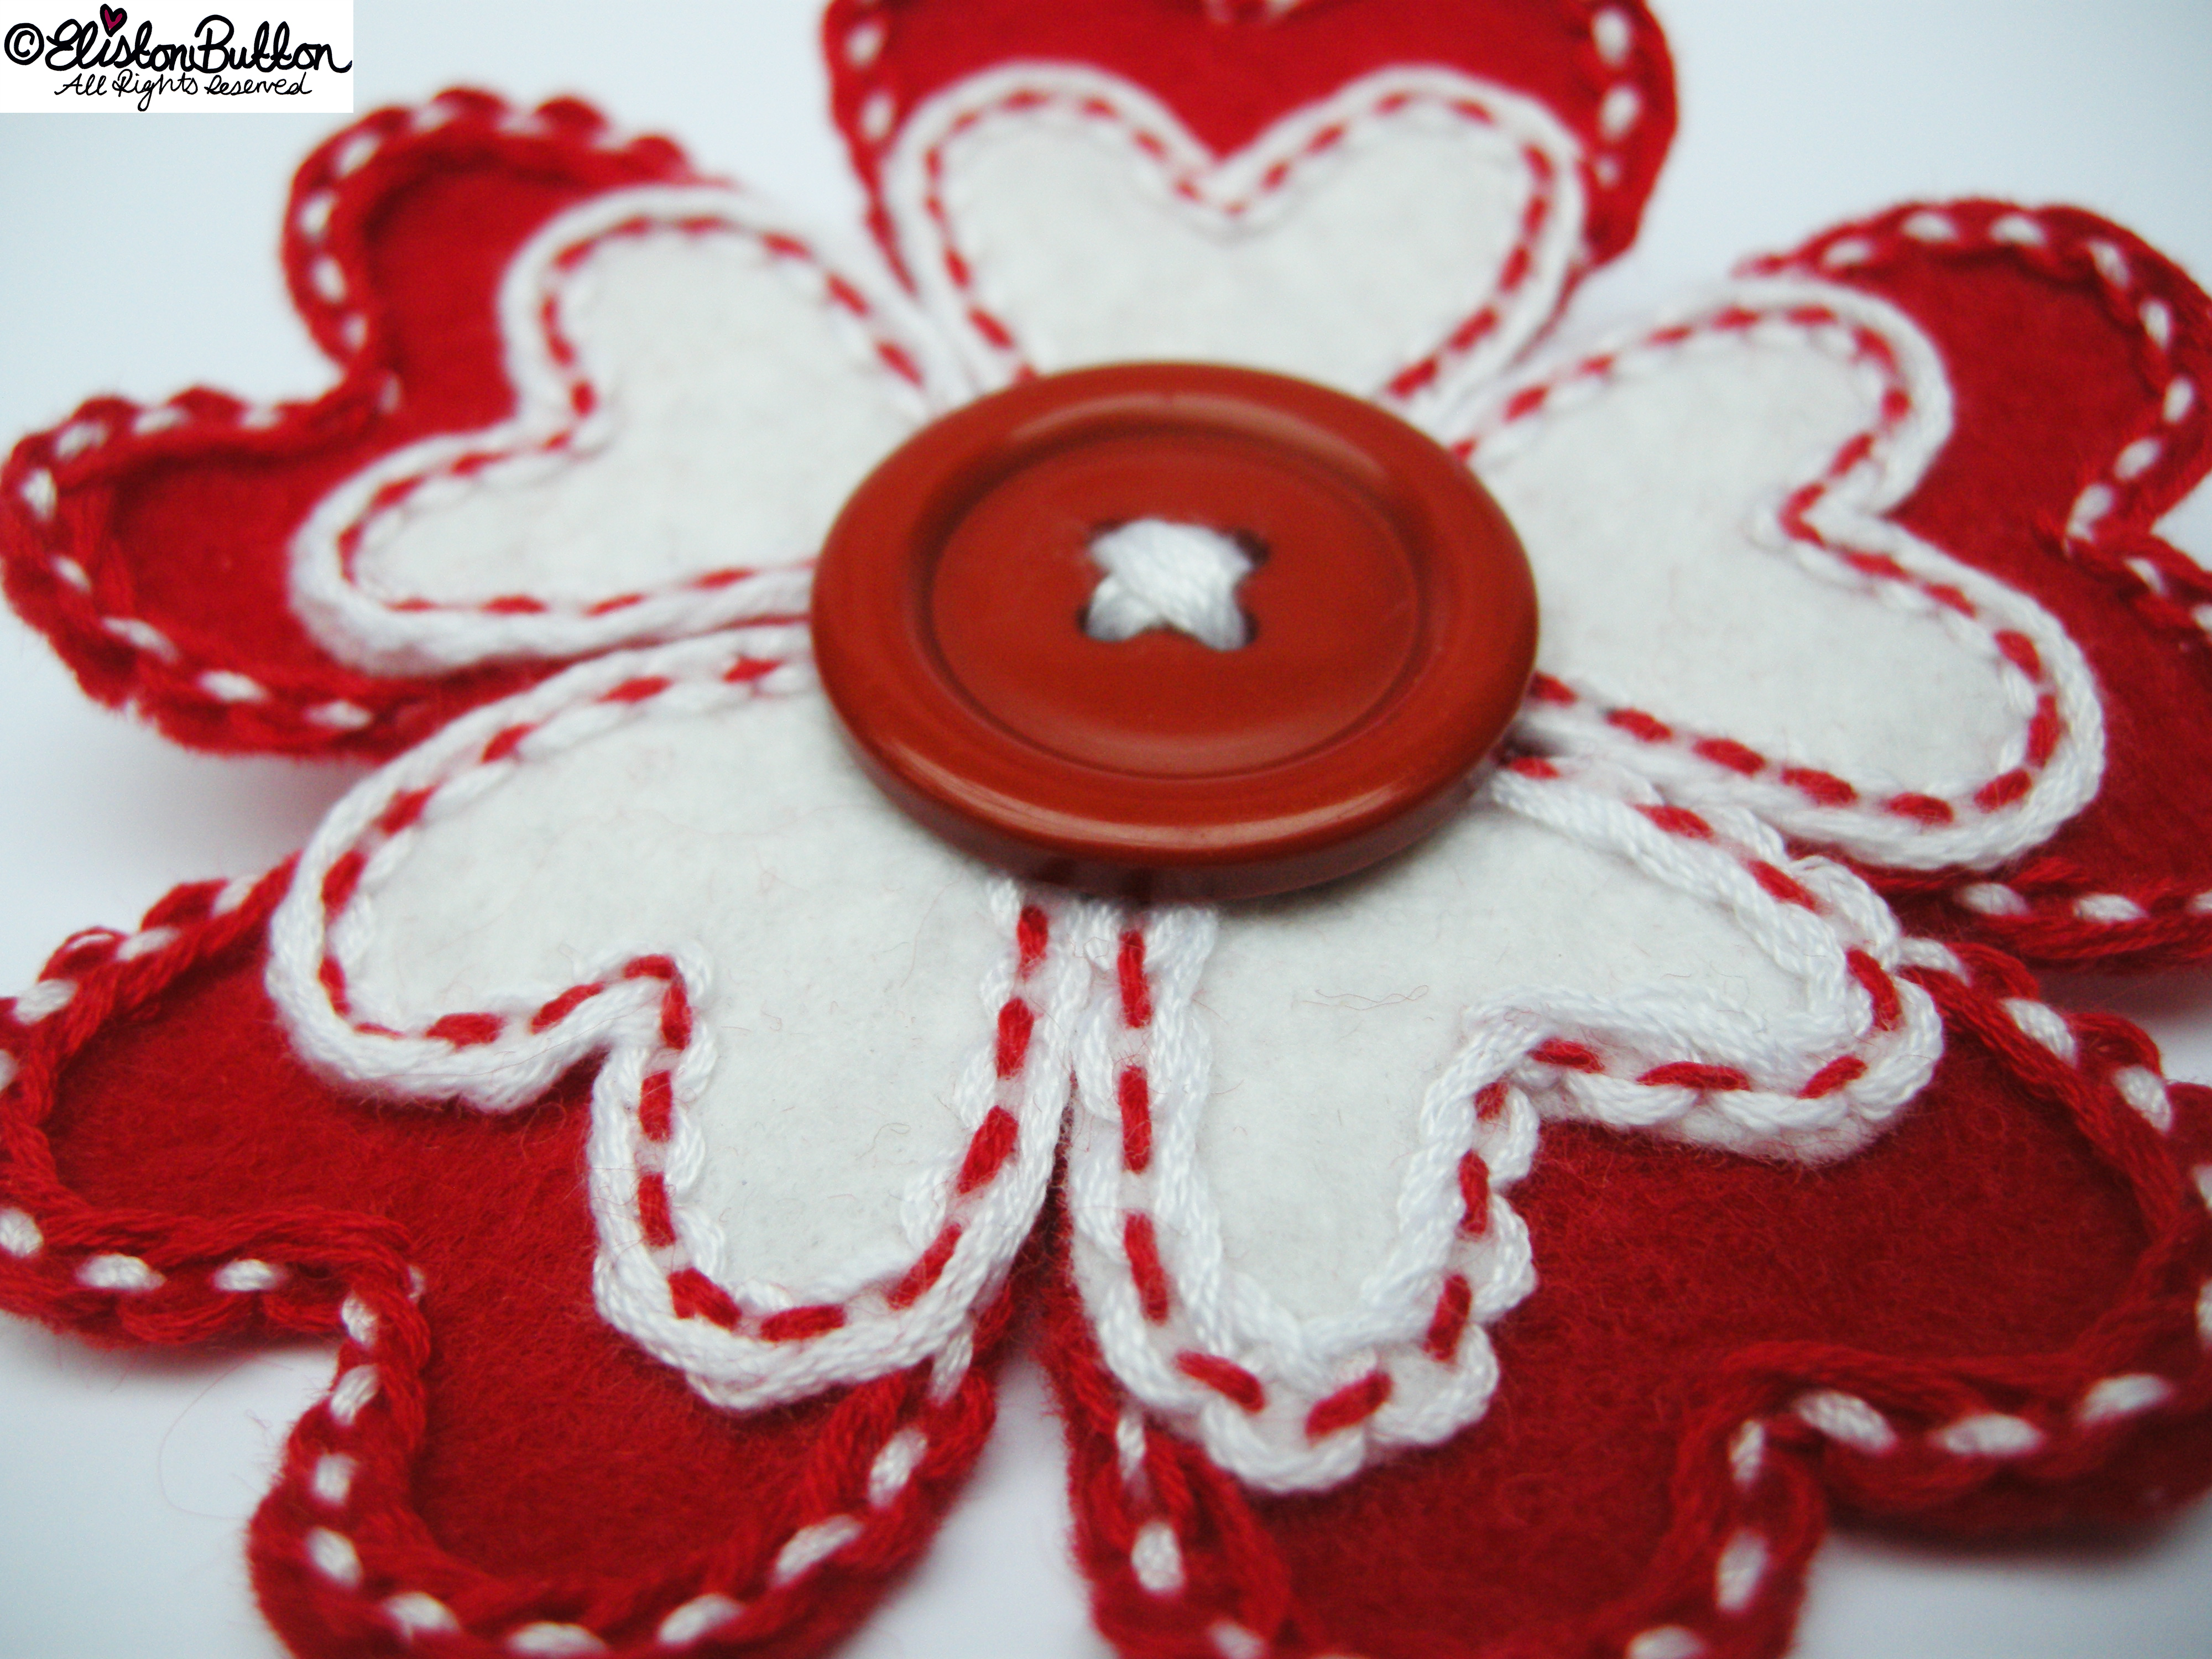 Hello Lover Red and White Embroidered Felt Heart Petal Flower Brooch - Petal Detail - 27 Before 27 - Hello Lover... at www.elistonbutton.com - Eliston Button - That Crafty Kid – Art, Design, Craft & Adventure.